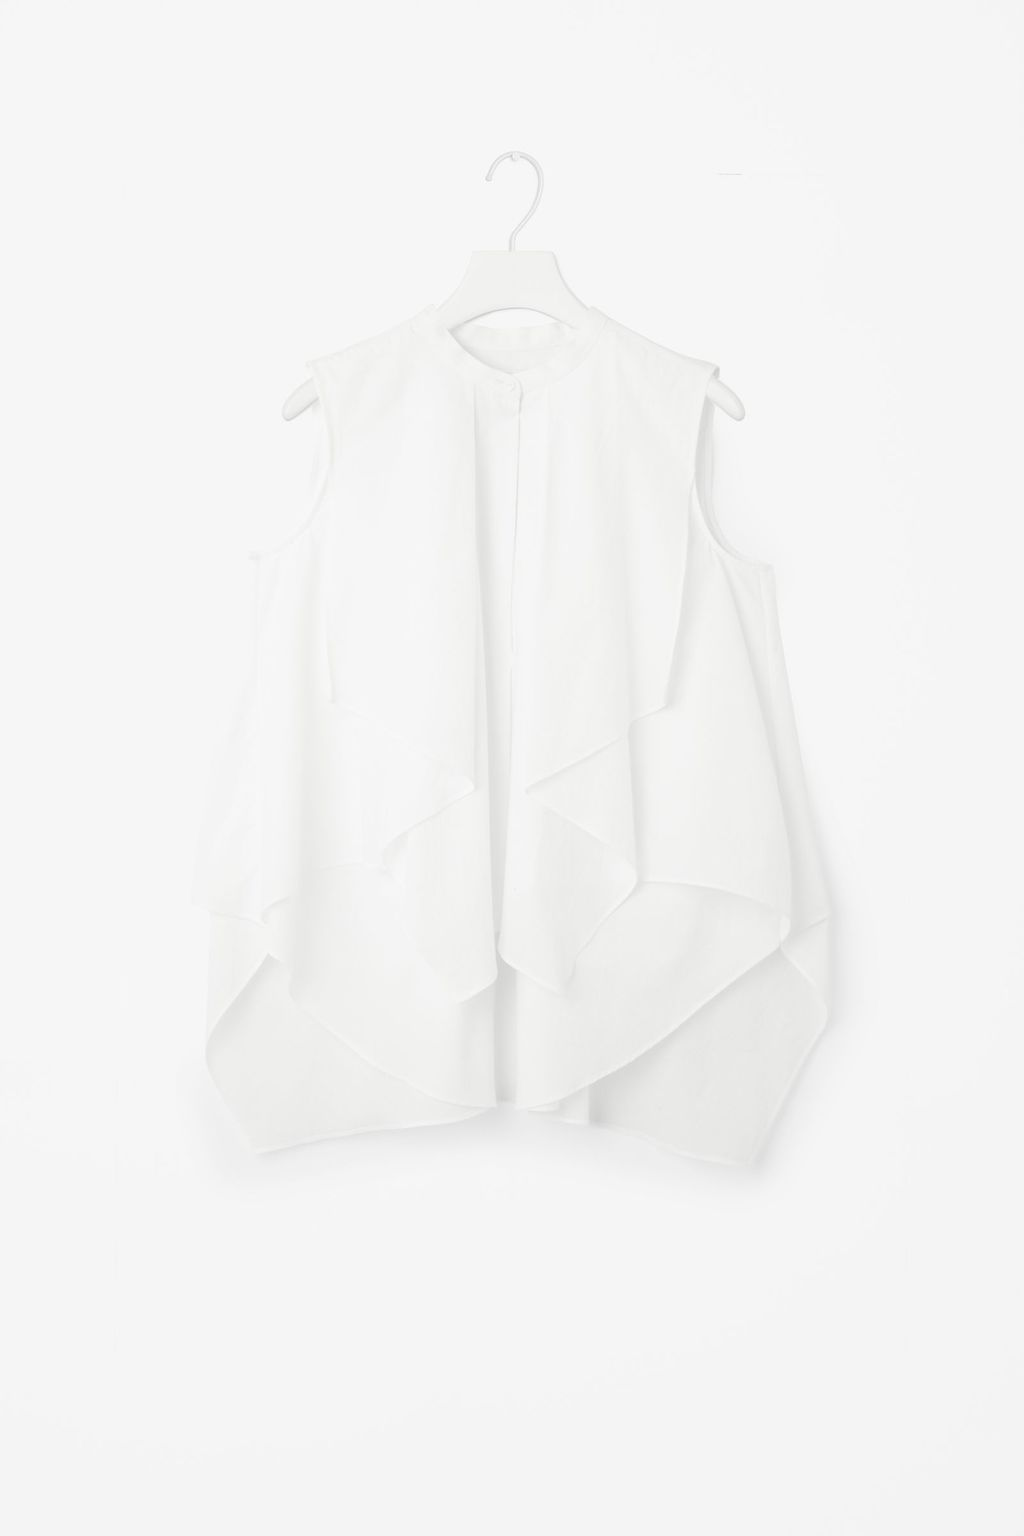 Blouse With Draped Layers - neckline: round neck; pattern: plain; sleeve style: sleeveless; style: blouse; predominant colour: white; occasions: casual, creative work; length: standard; fibres: cotton - 100%; fit: loose; sleeve length: sleeveless; pattern type: fabric; texture group: other - light to midweight; season: s/s 2016; wardrobe: basic